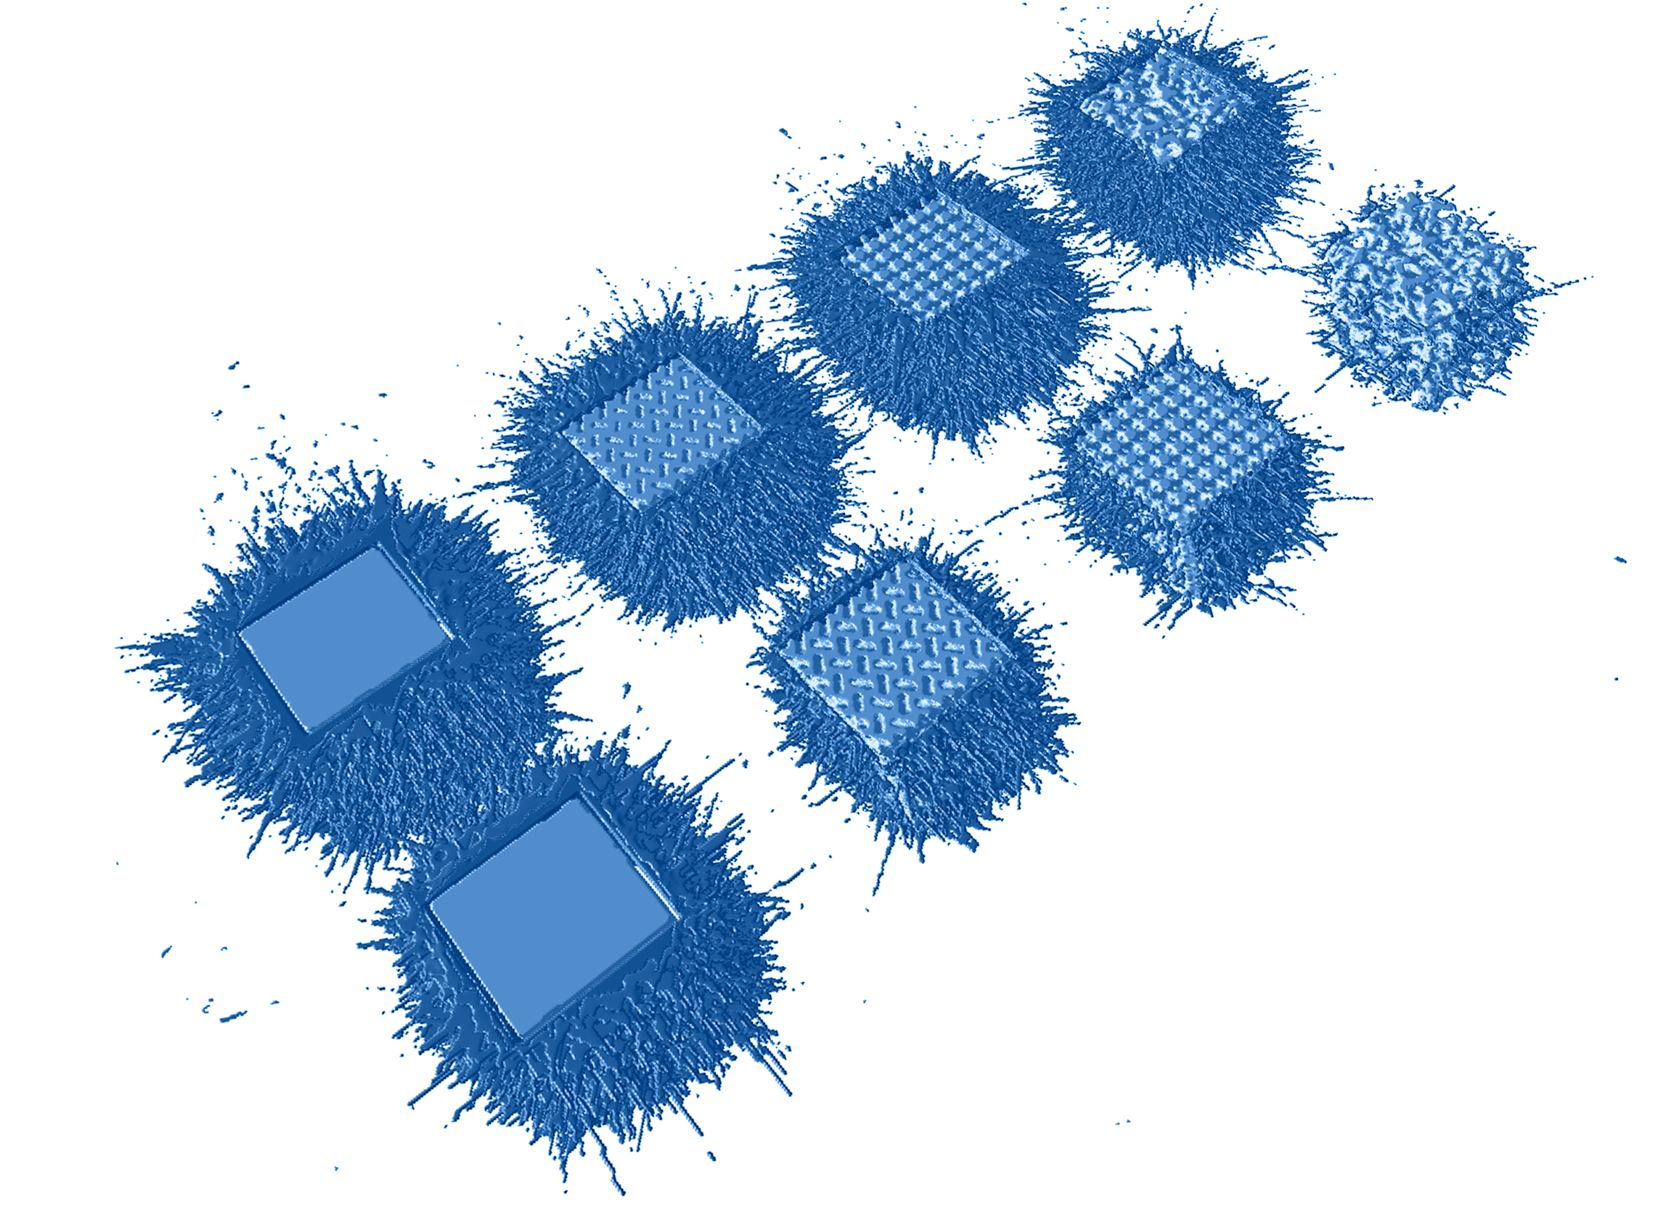 The spatter formation using Linde's novel argon-helium gas mixture in the print chamber. Image via Linde.